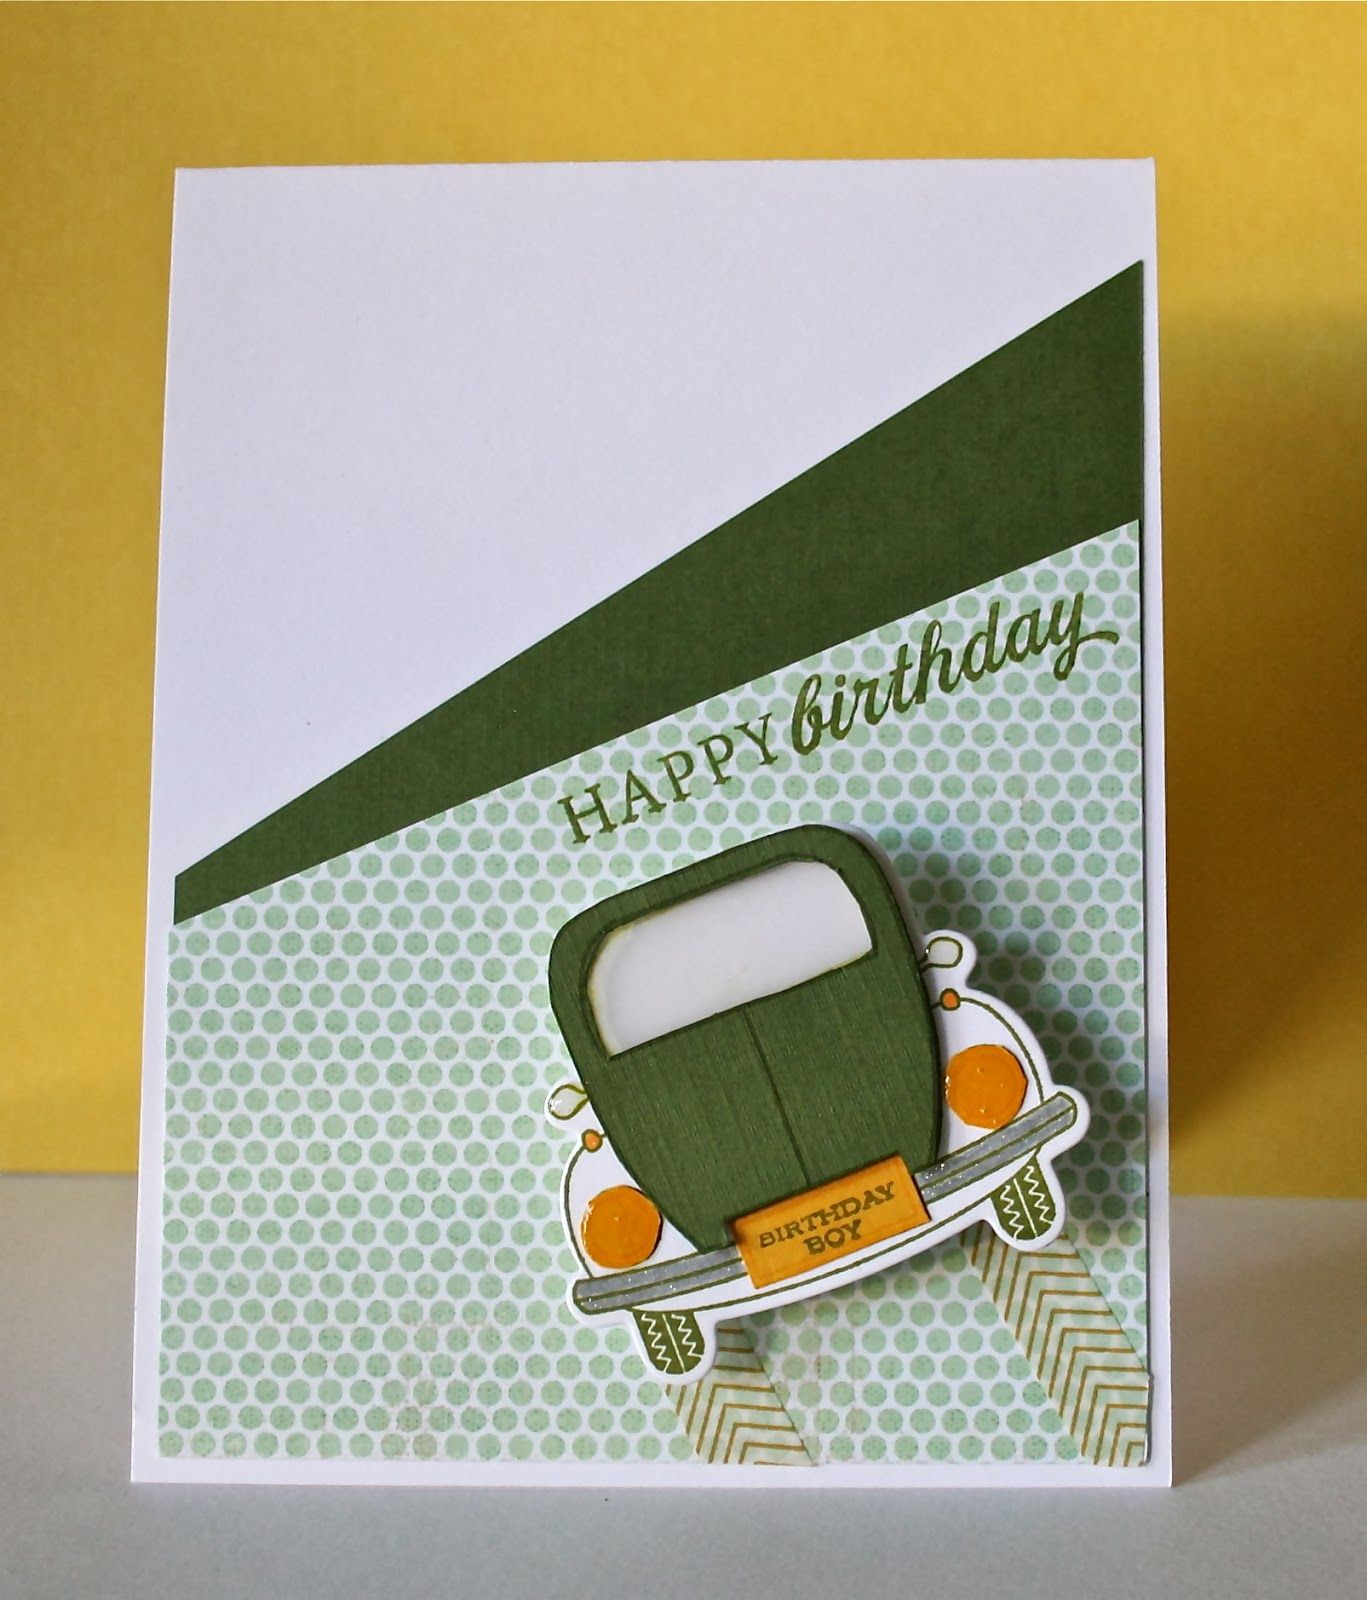 Green Bay Packers Colors Masculine Birthday Cards Green Bay Packers Colors Cards Handmade